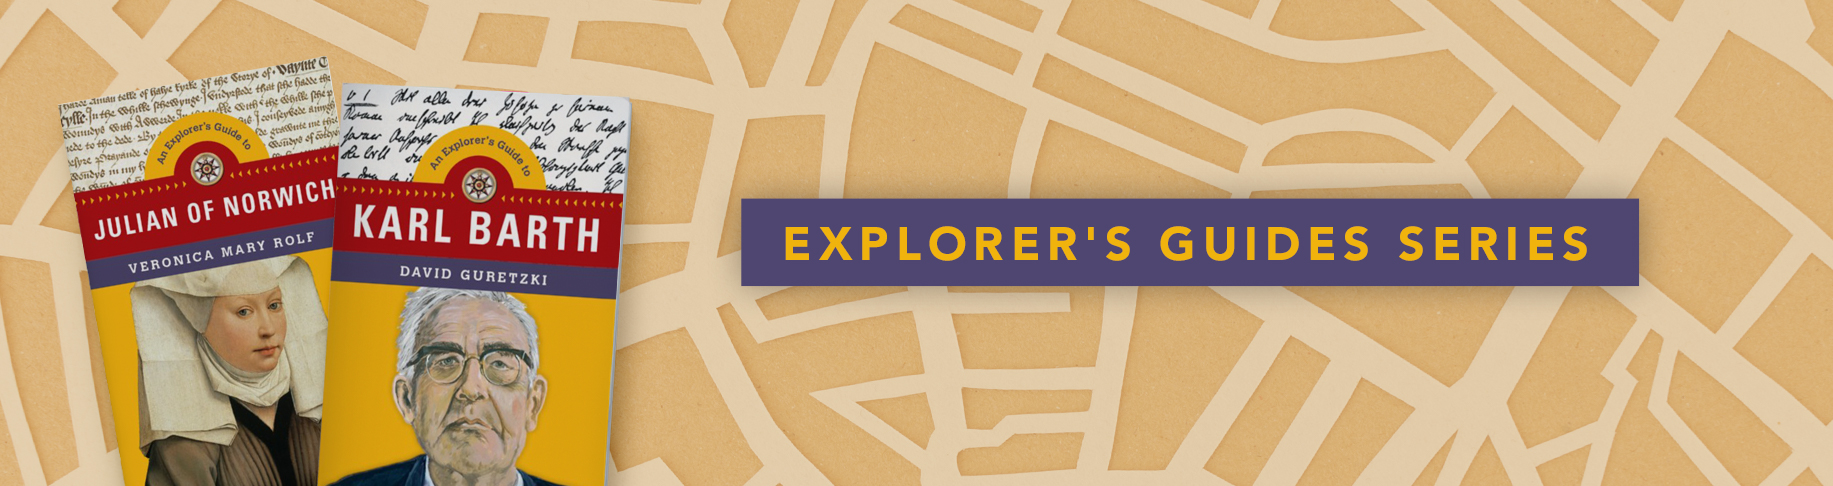 Explorer's Guides Series